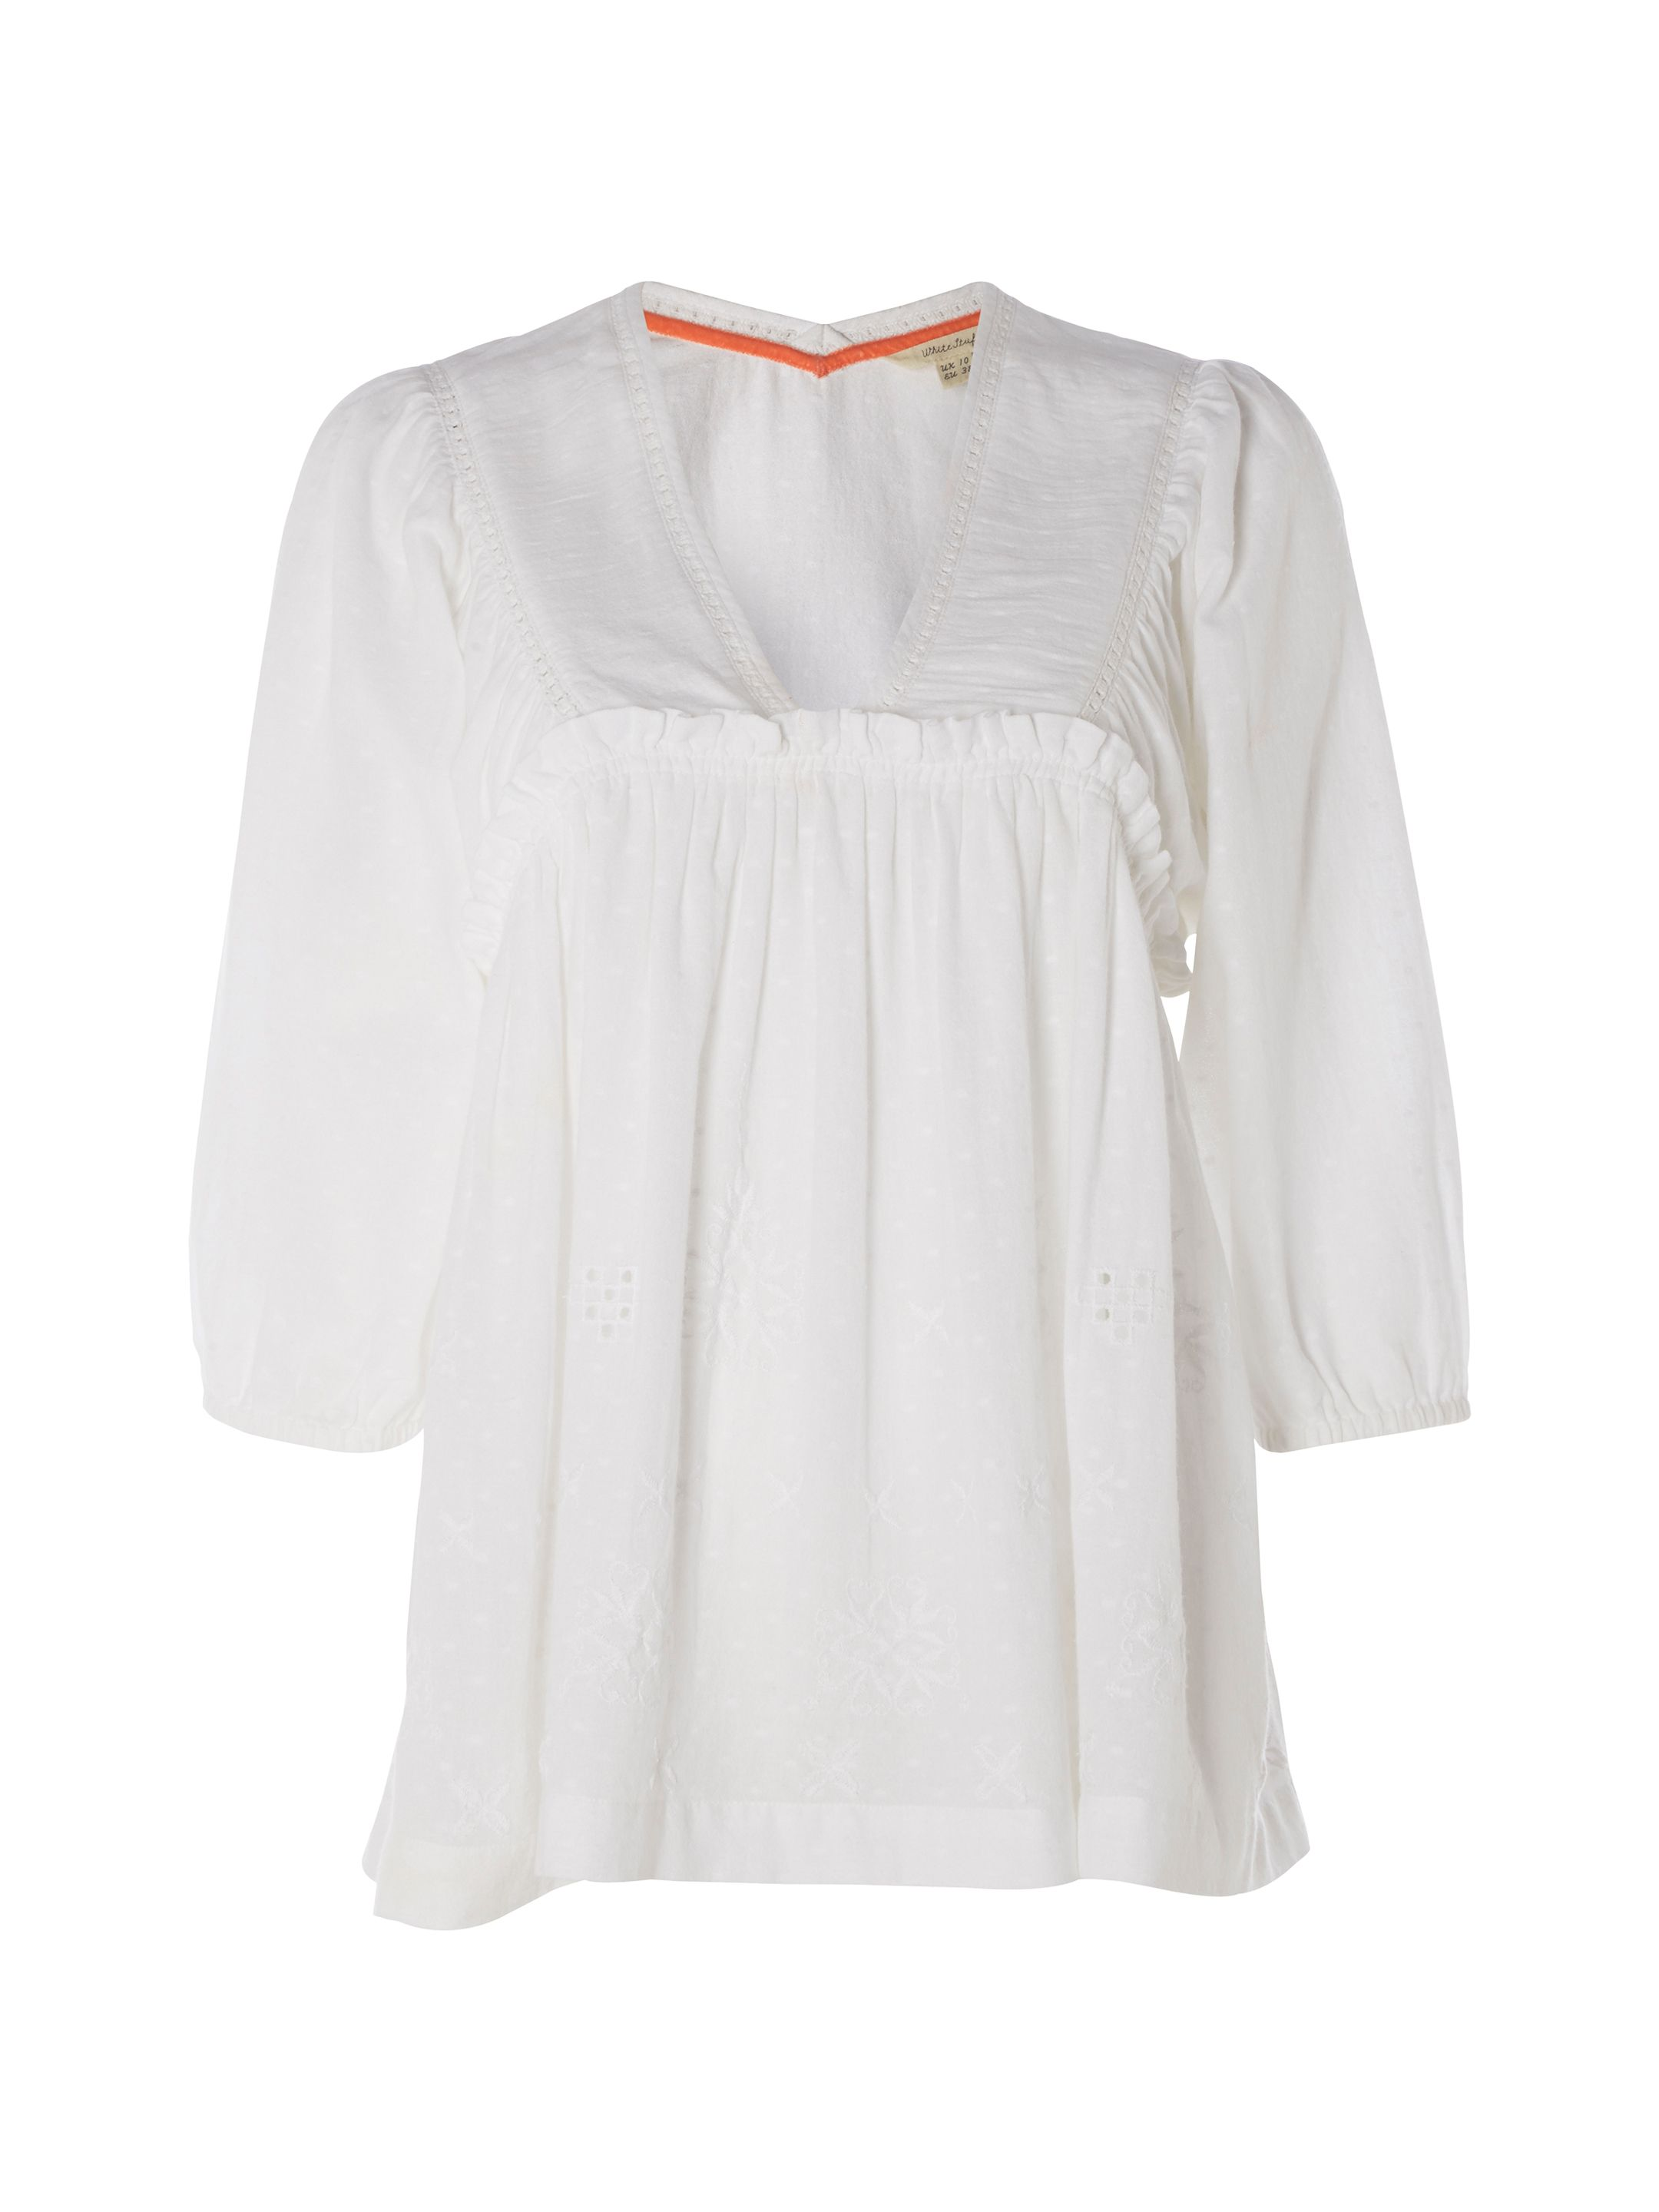 White Stuff Bea Boho Top, White